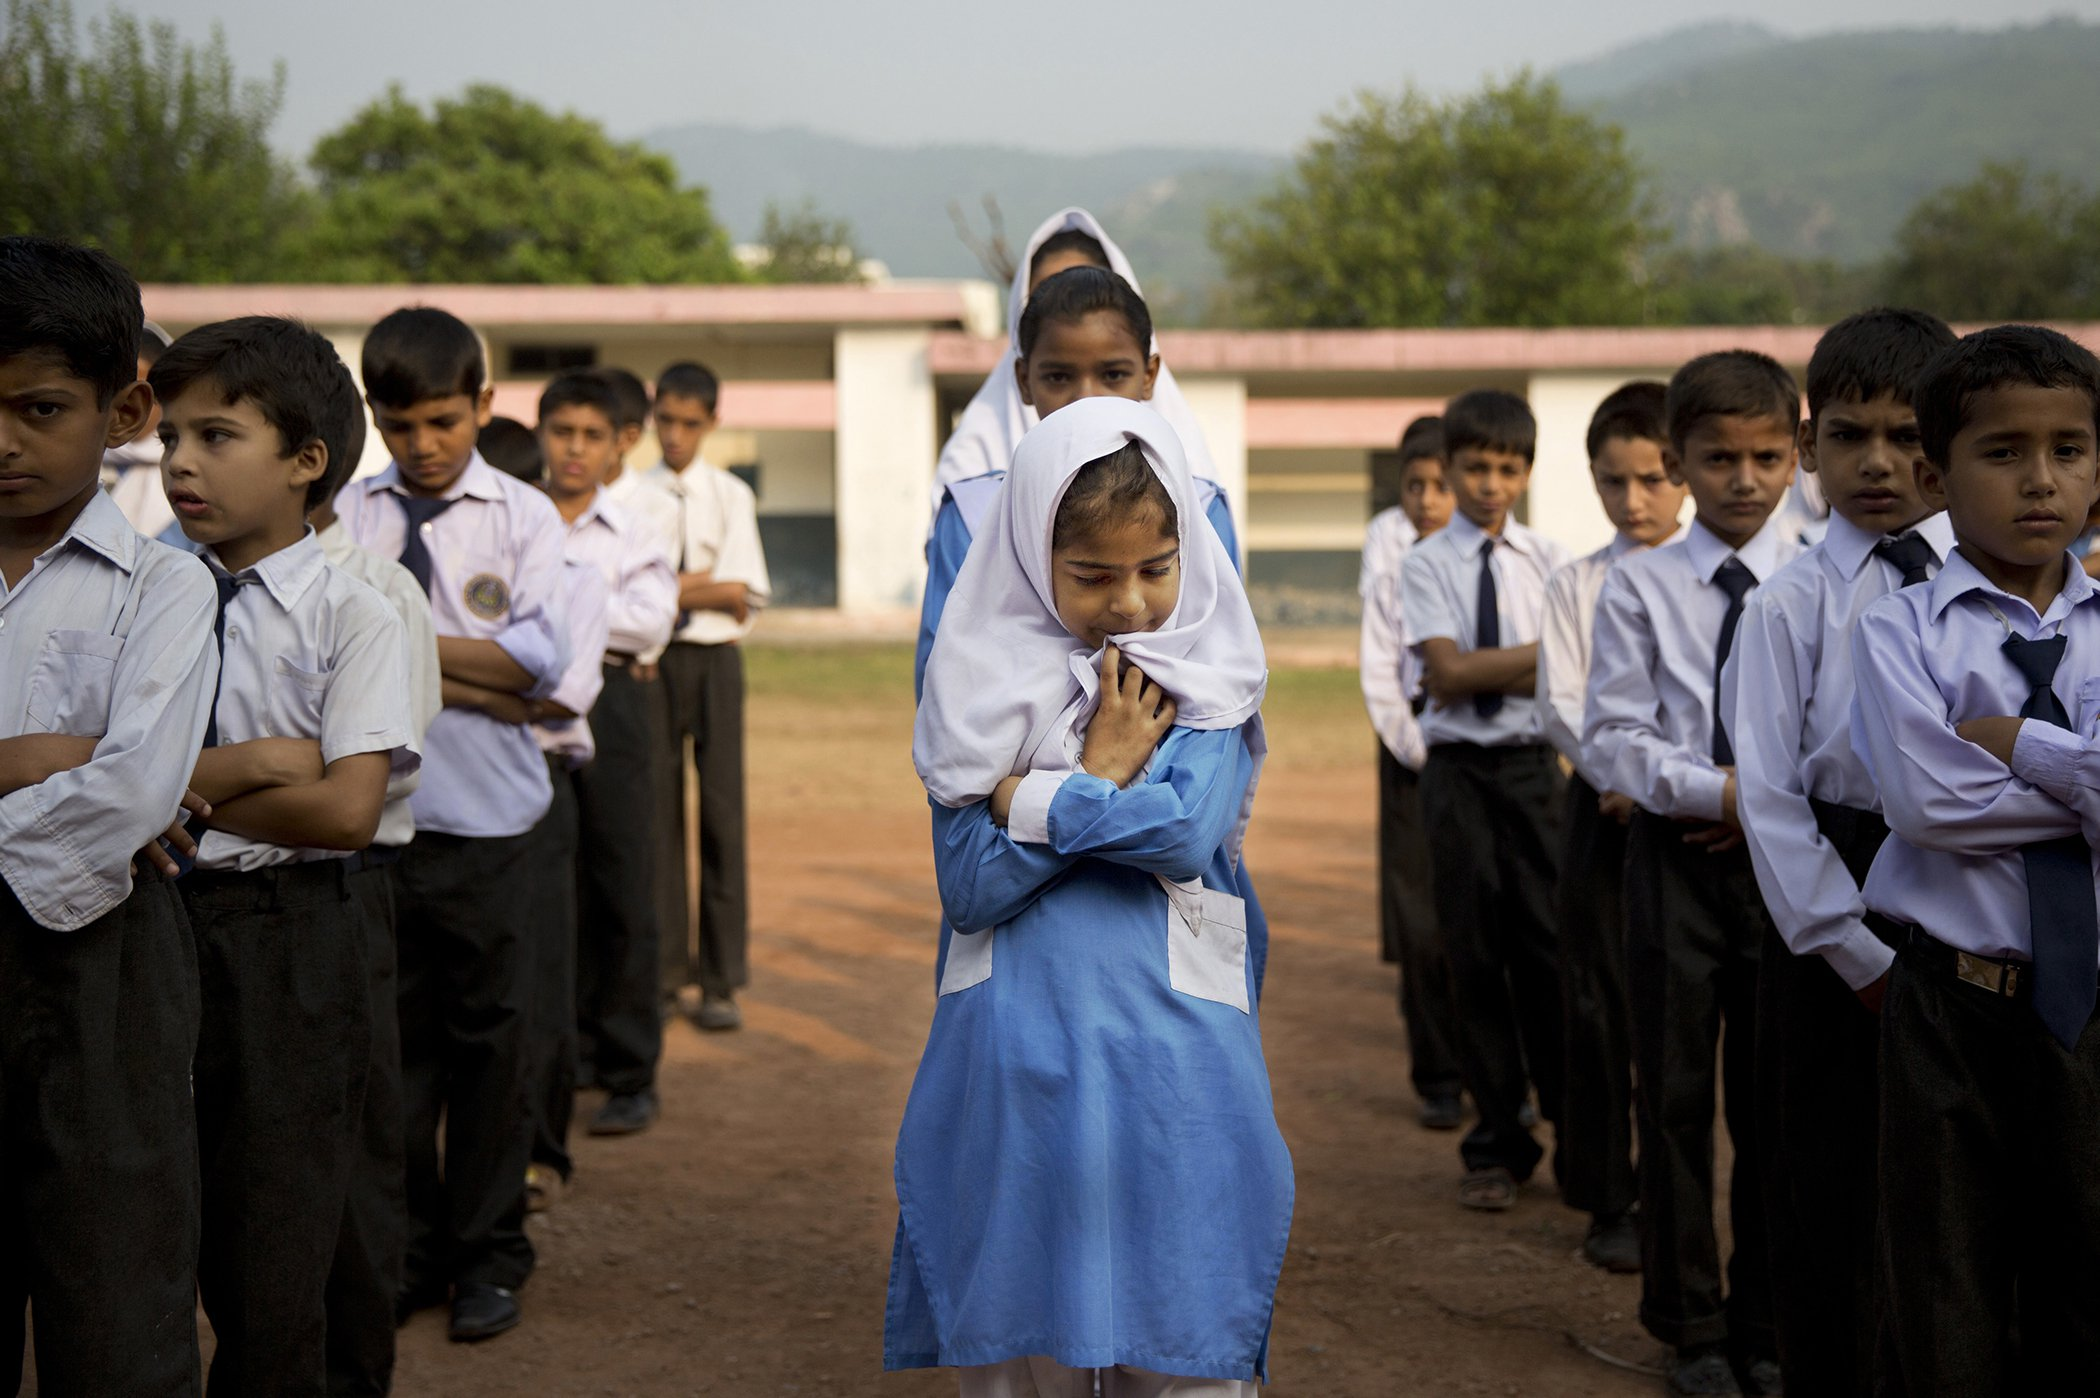 Barriers-To-Education-Around-The-World-2.jpg